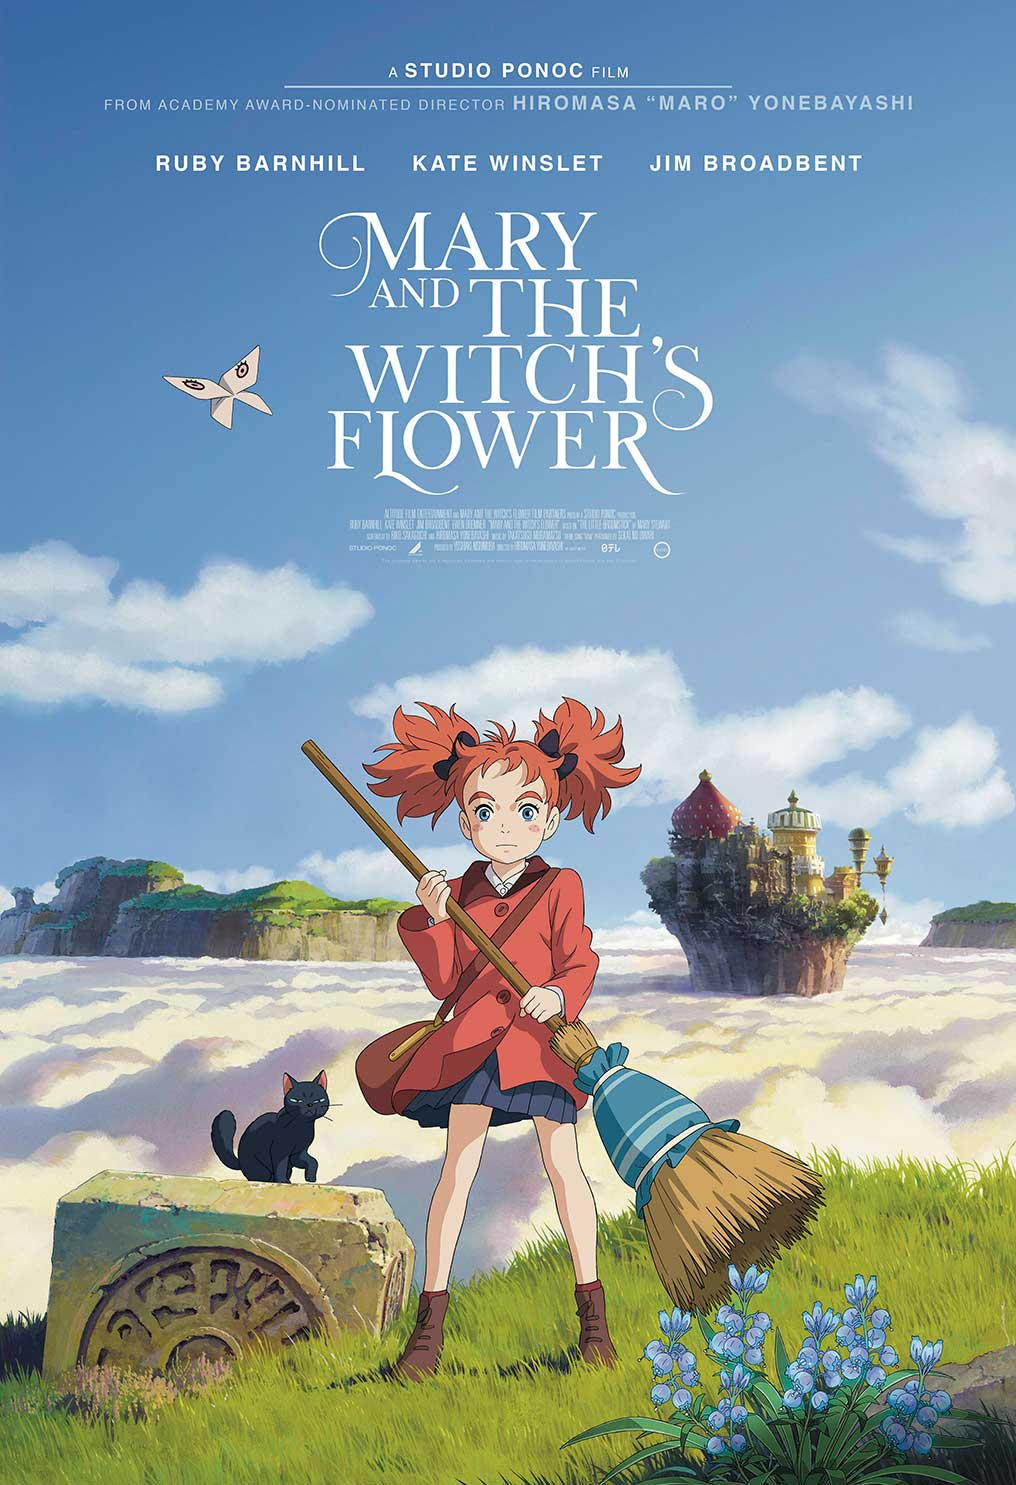 MARY AND THE WITCH'S FLOWER (2017)